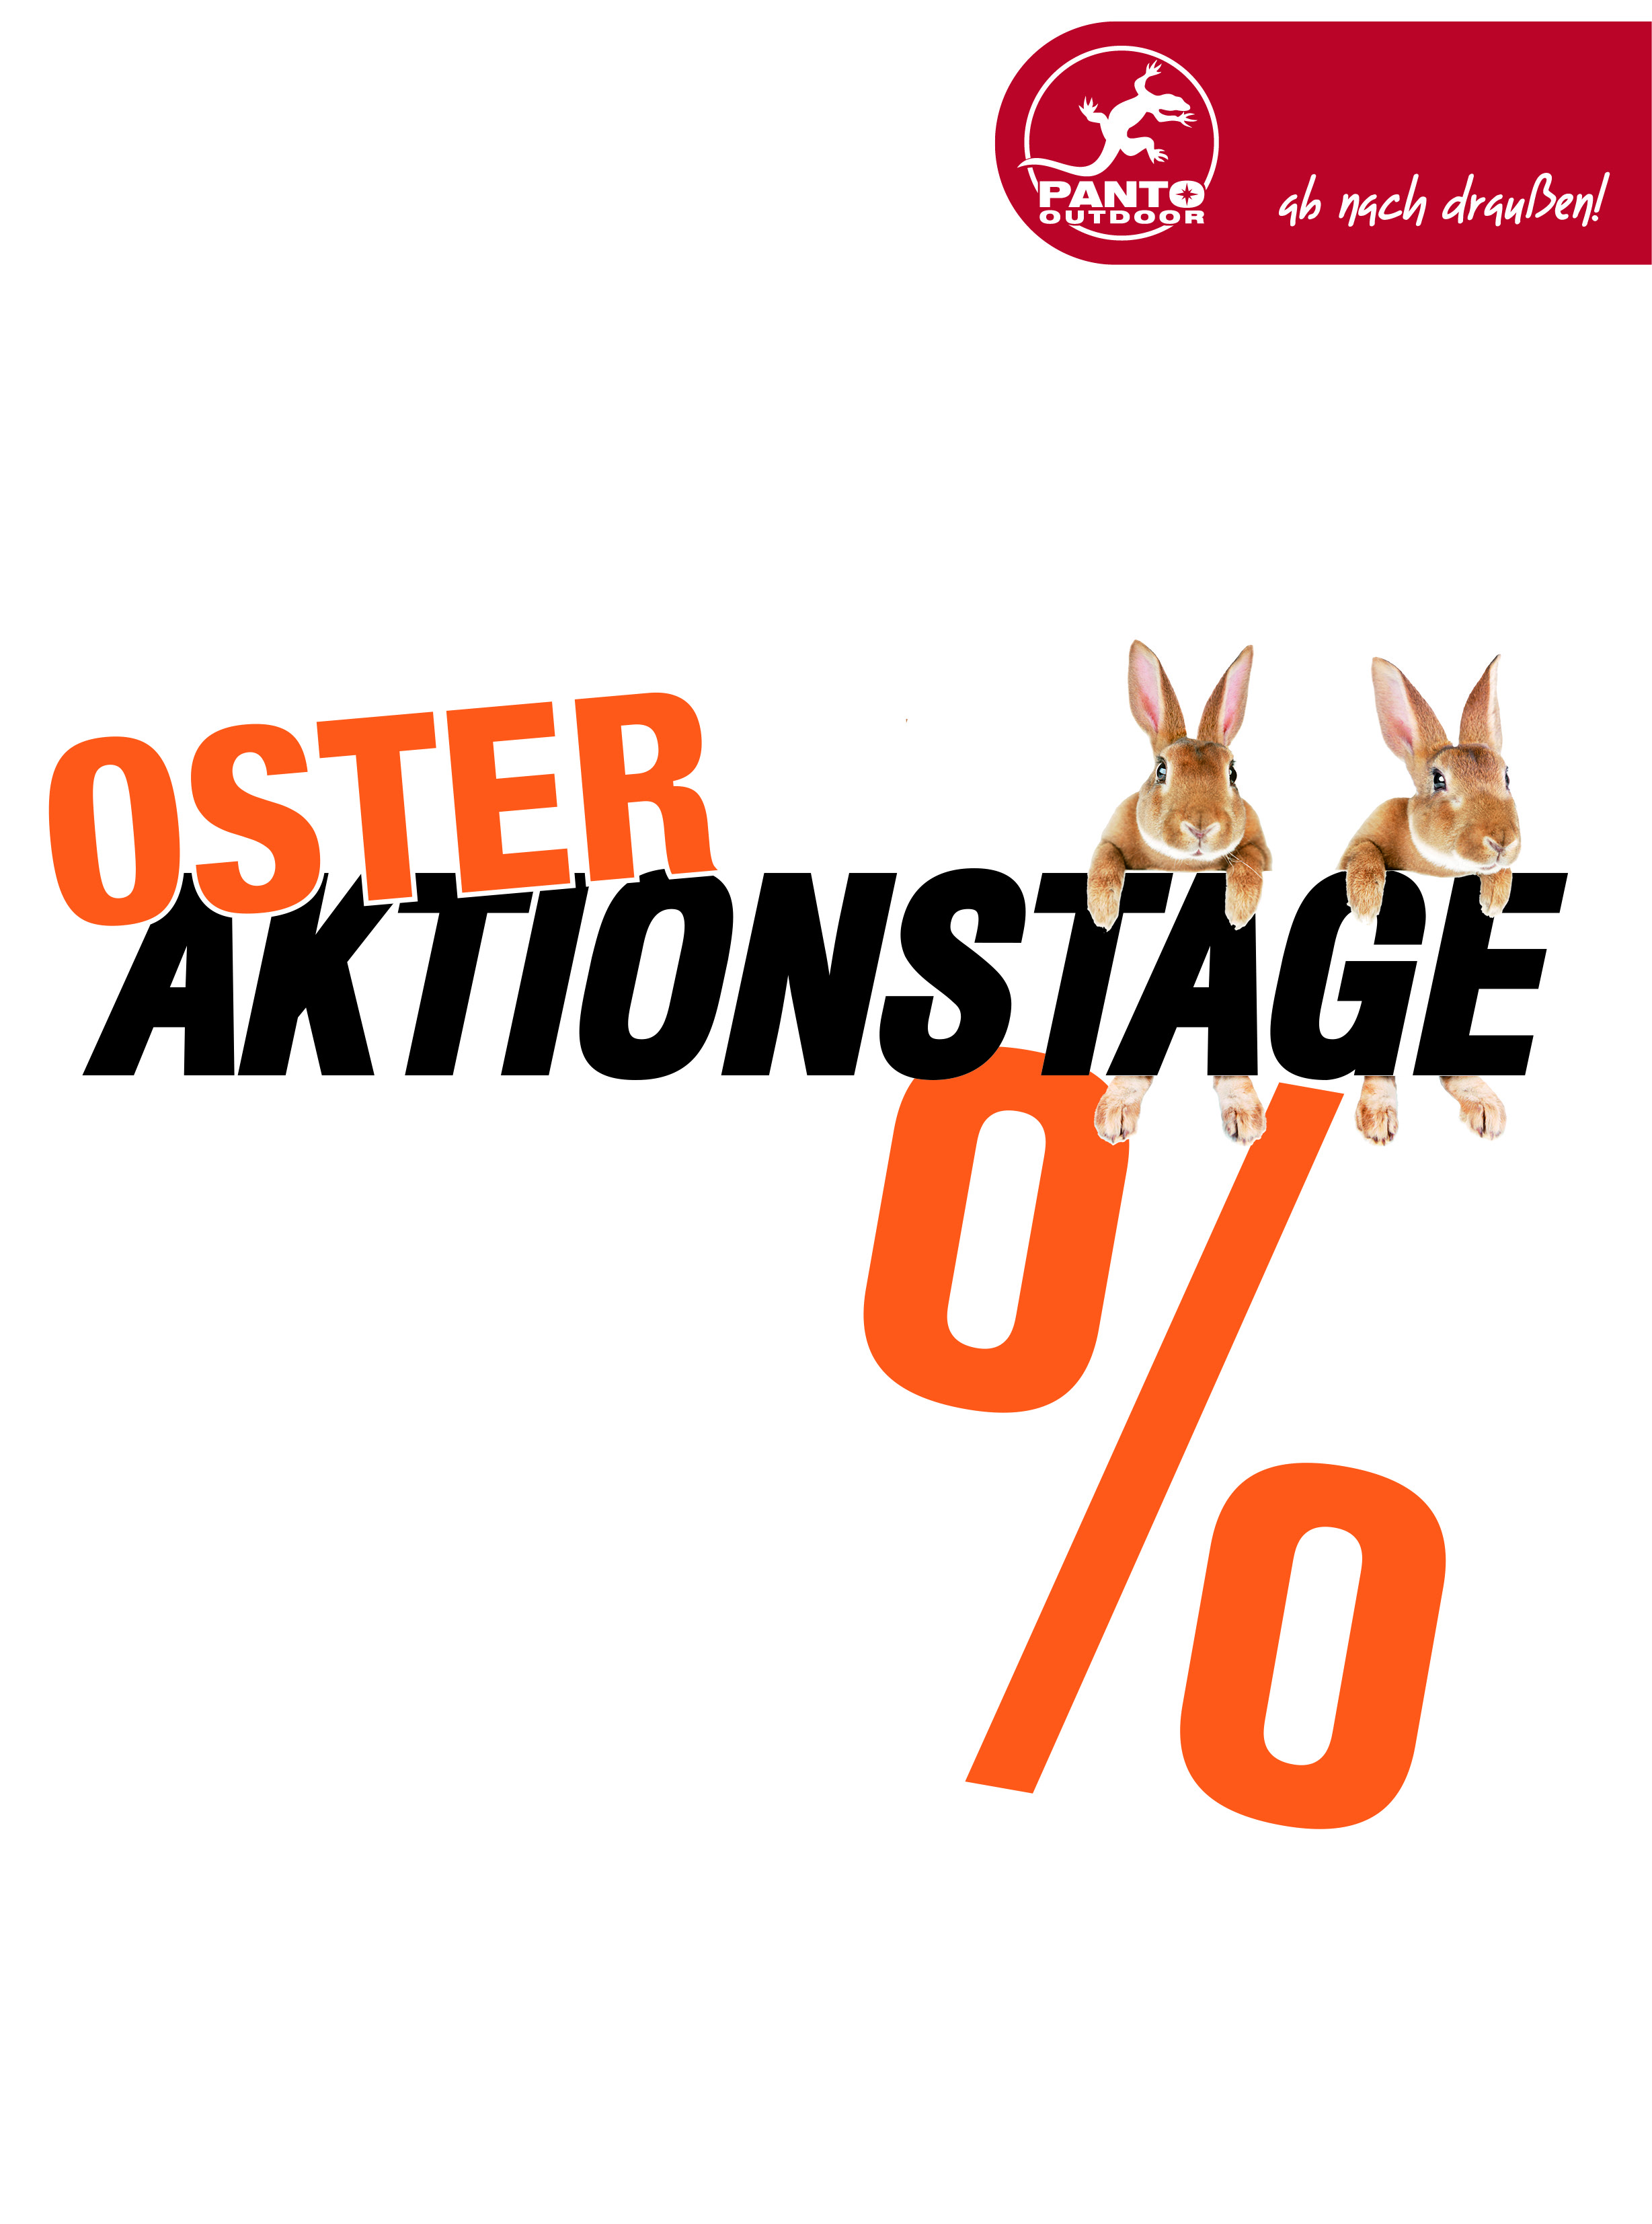 Oster-Aktionstage bei PANTO OUTDOOR